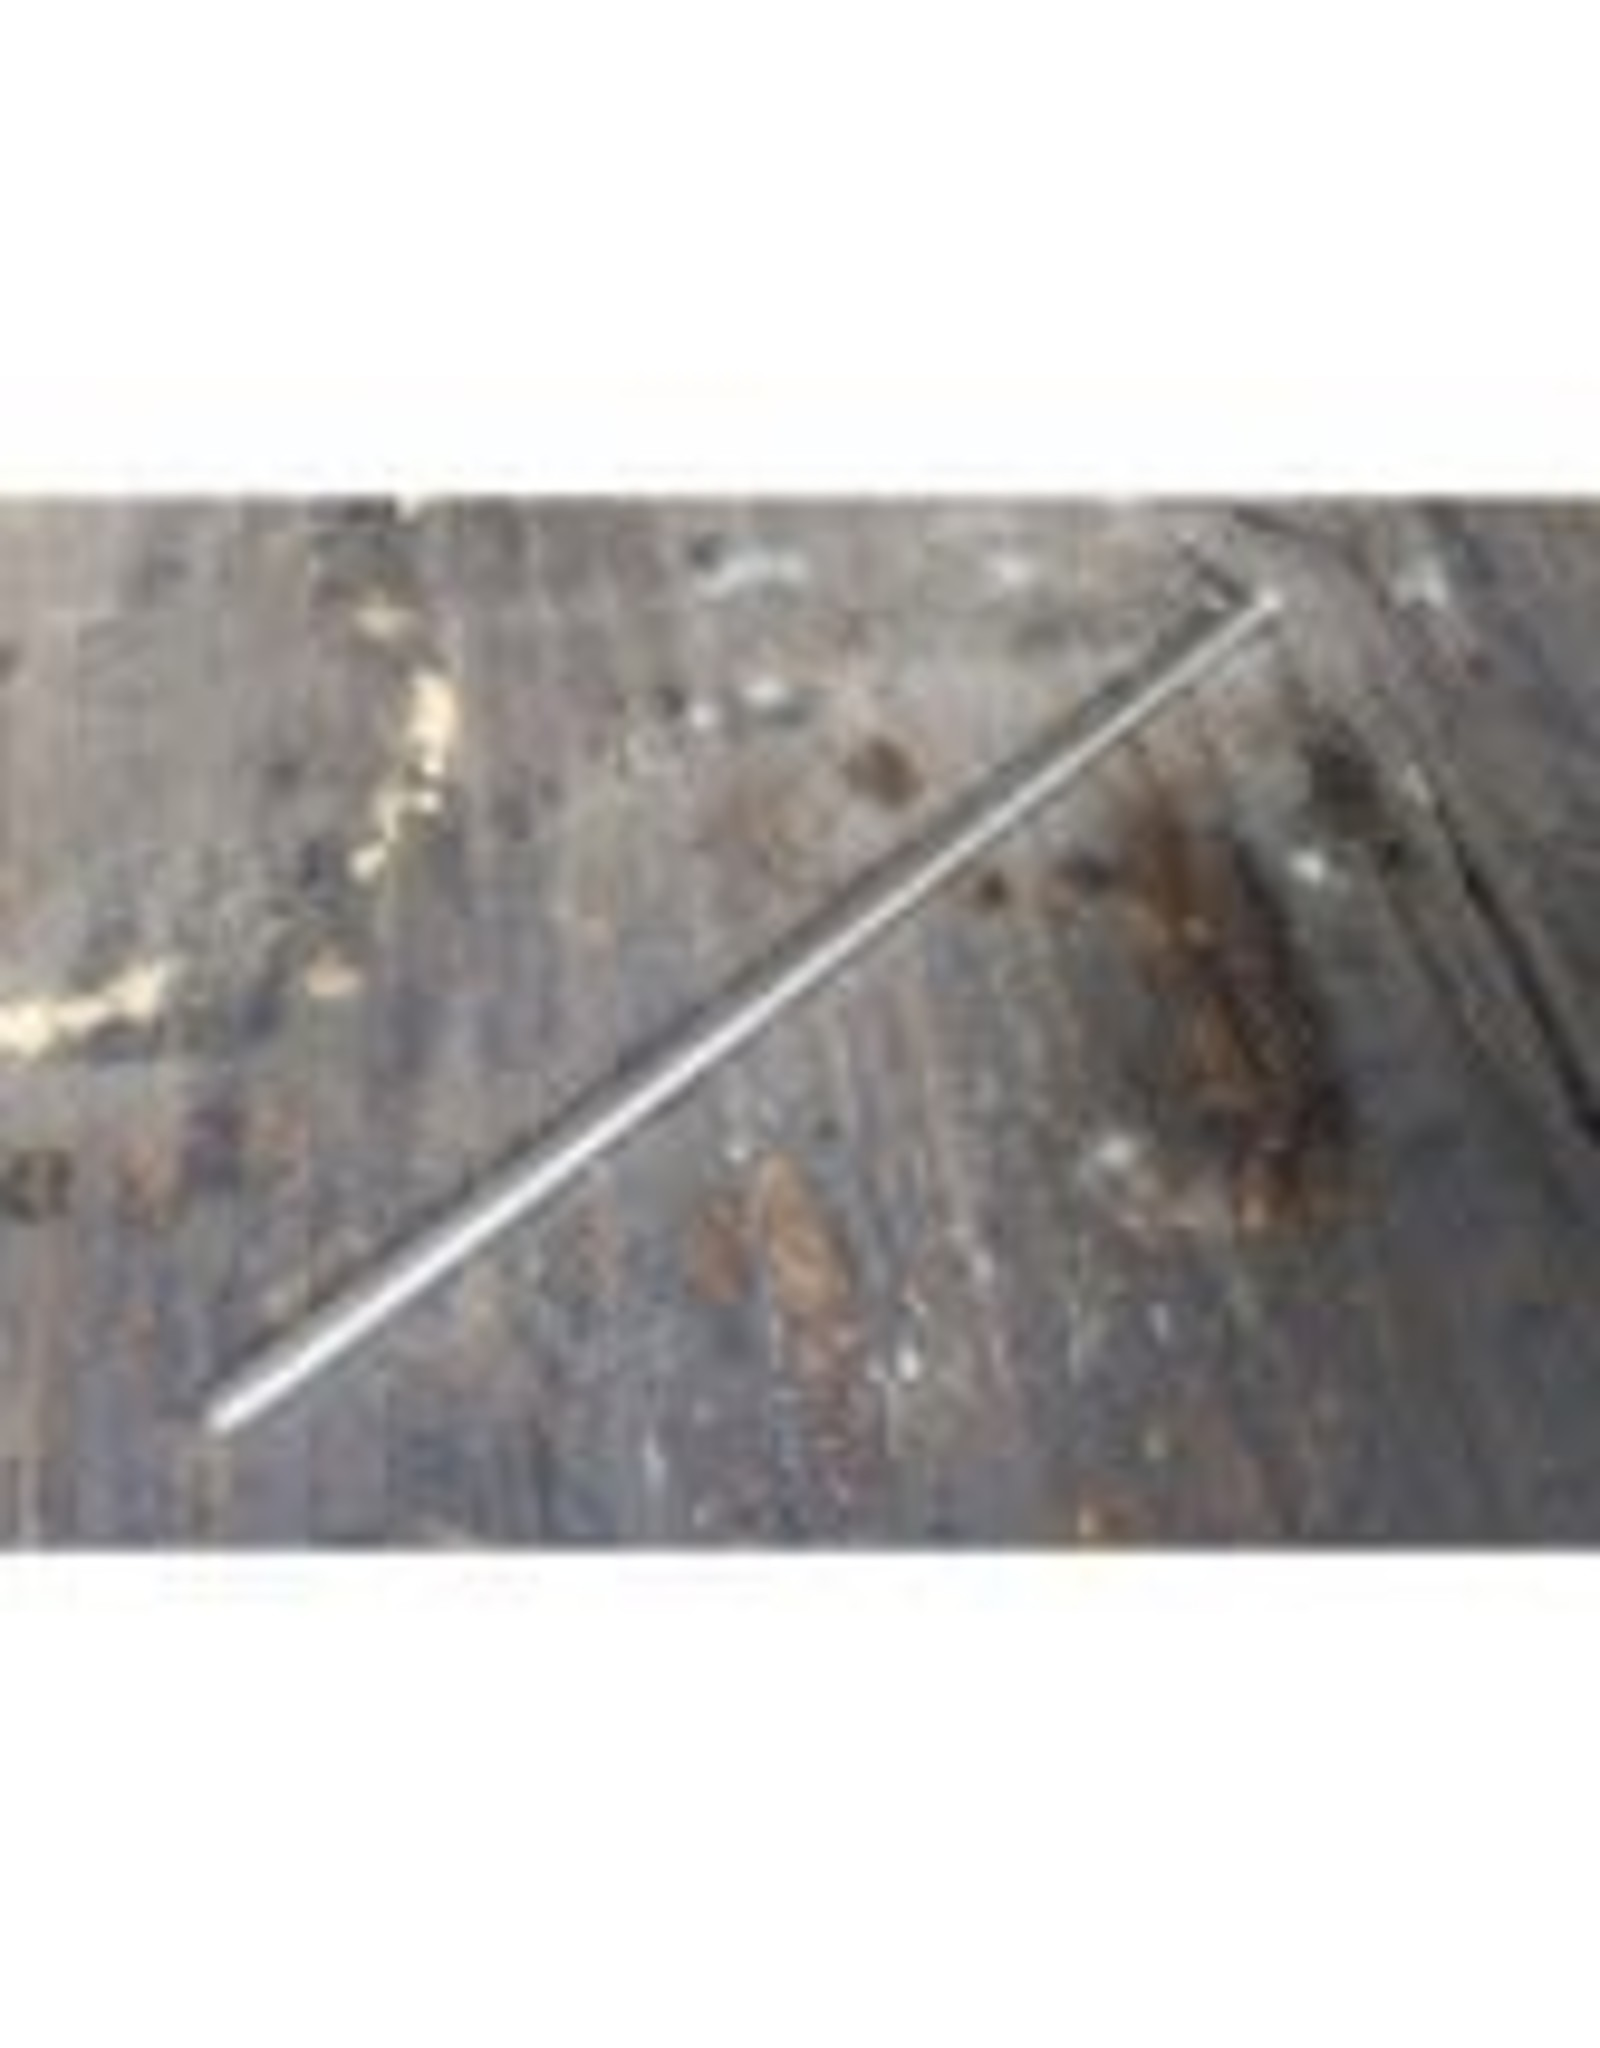 ANVIL ANVIL 12 INCH THERMOWELL